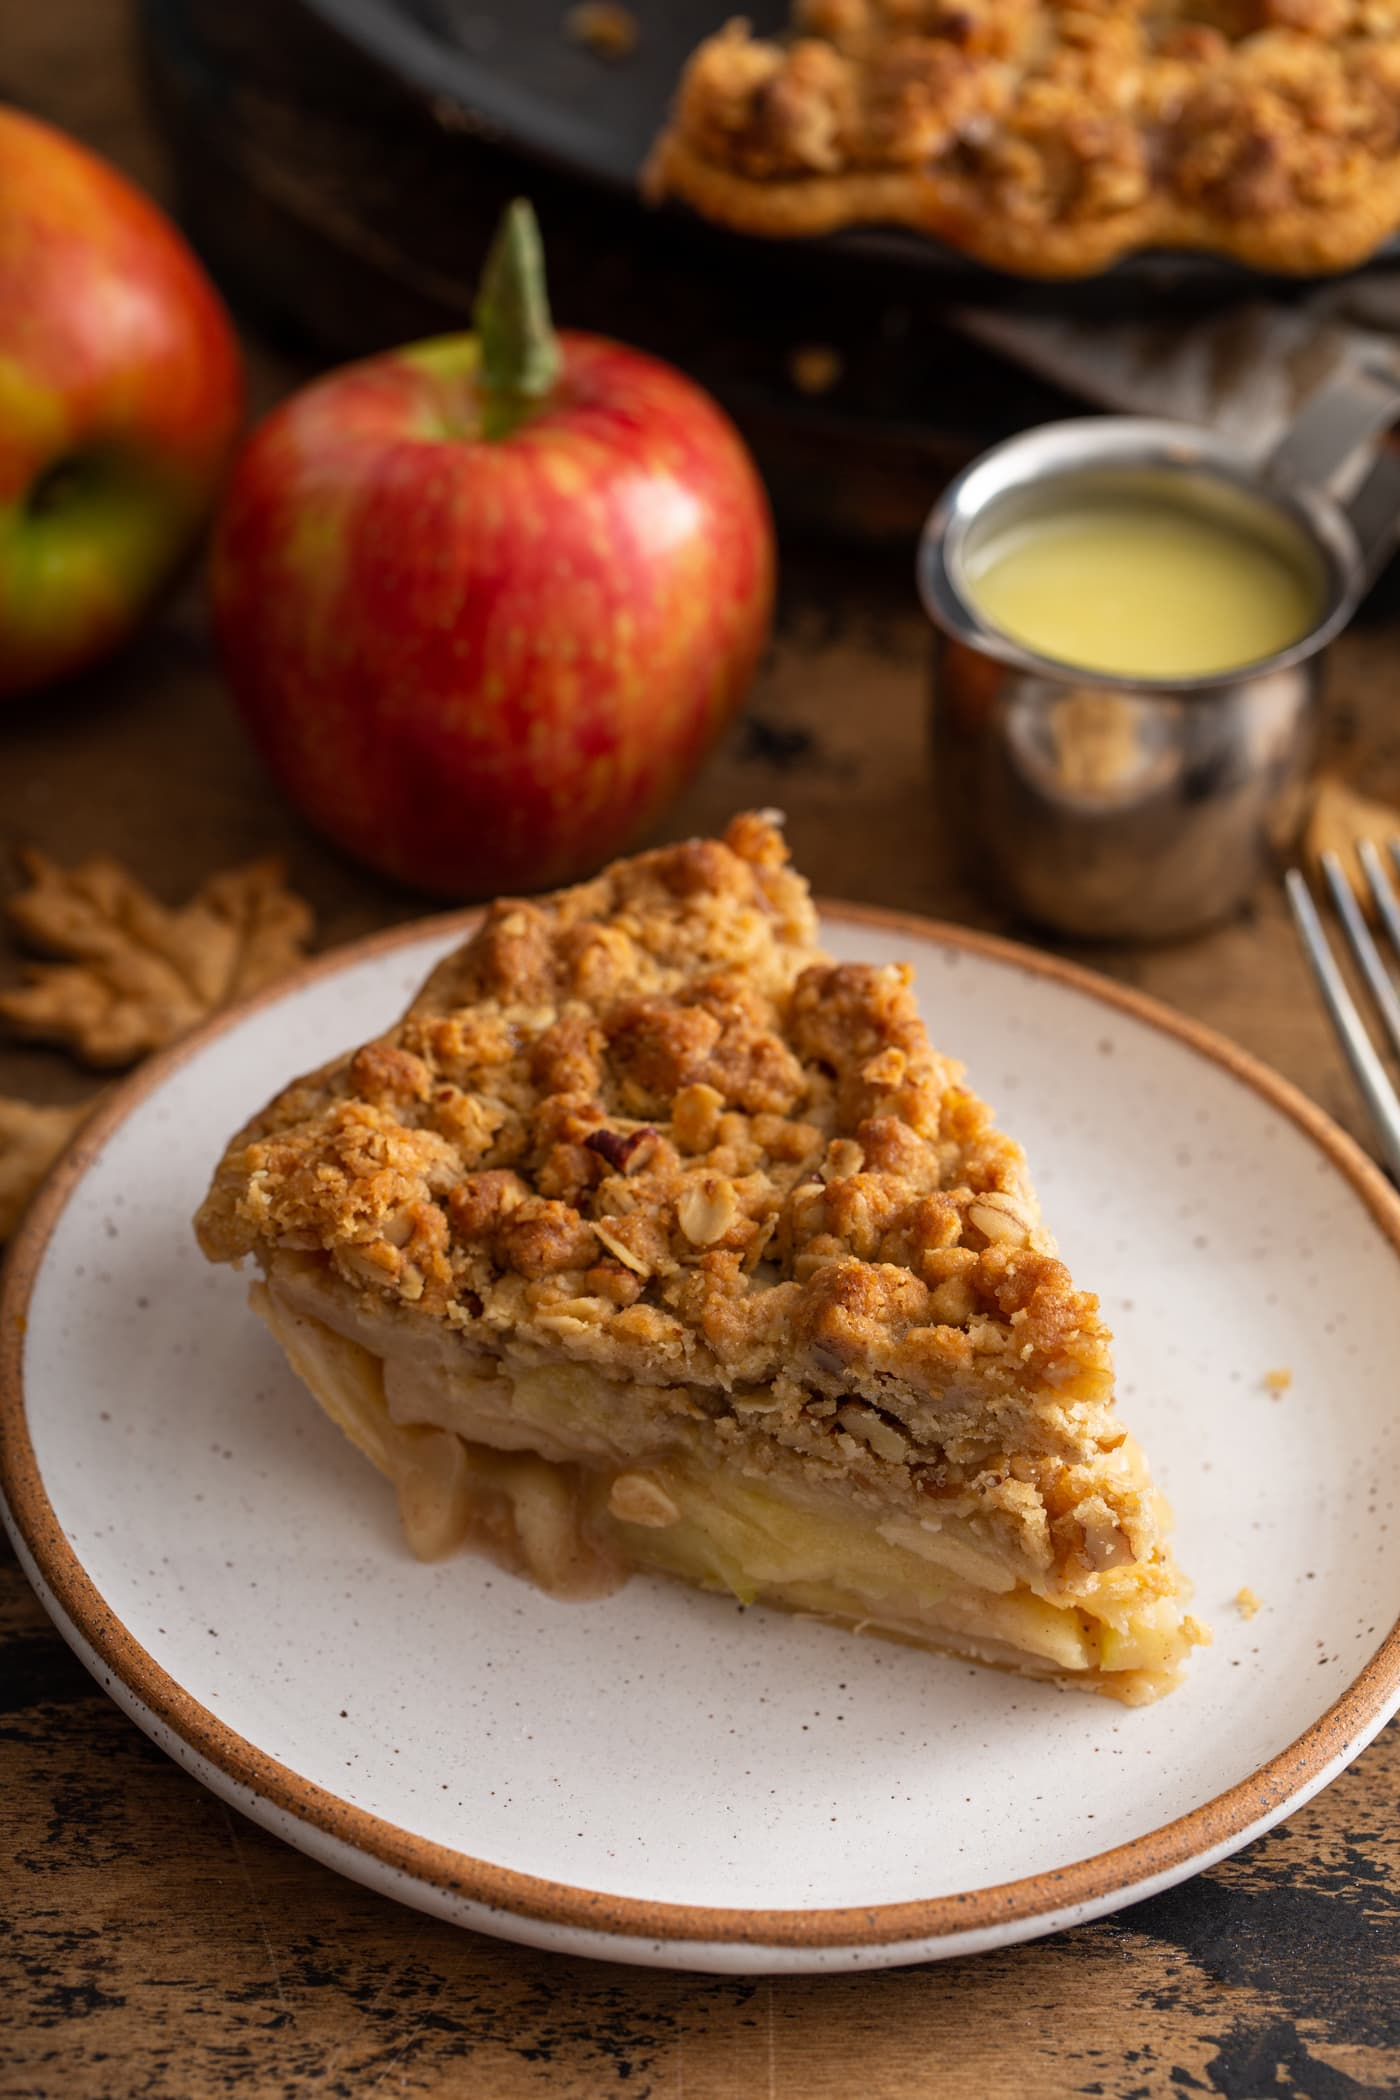 A slice of Dutch Apple Pie. You can see the apples and they are topped with a golden brown crumble. An apple and a container of sauce are in the background.